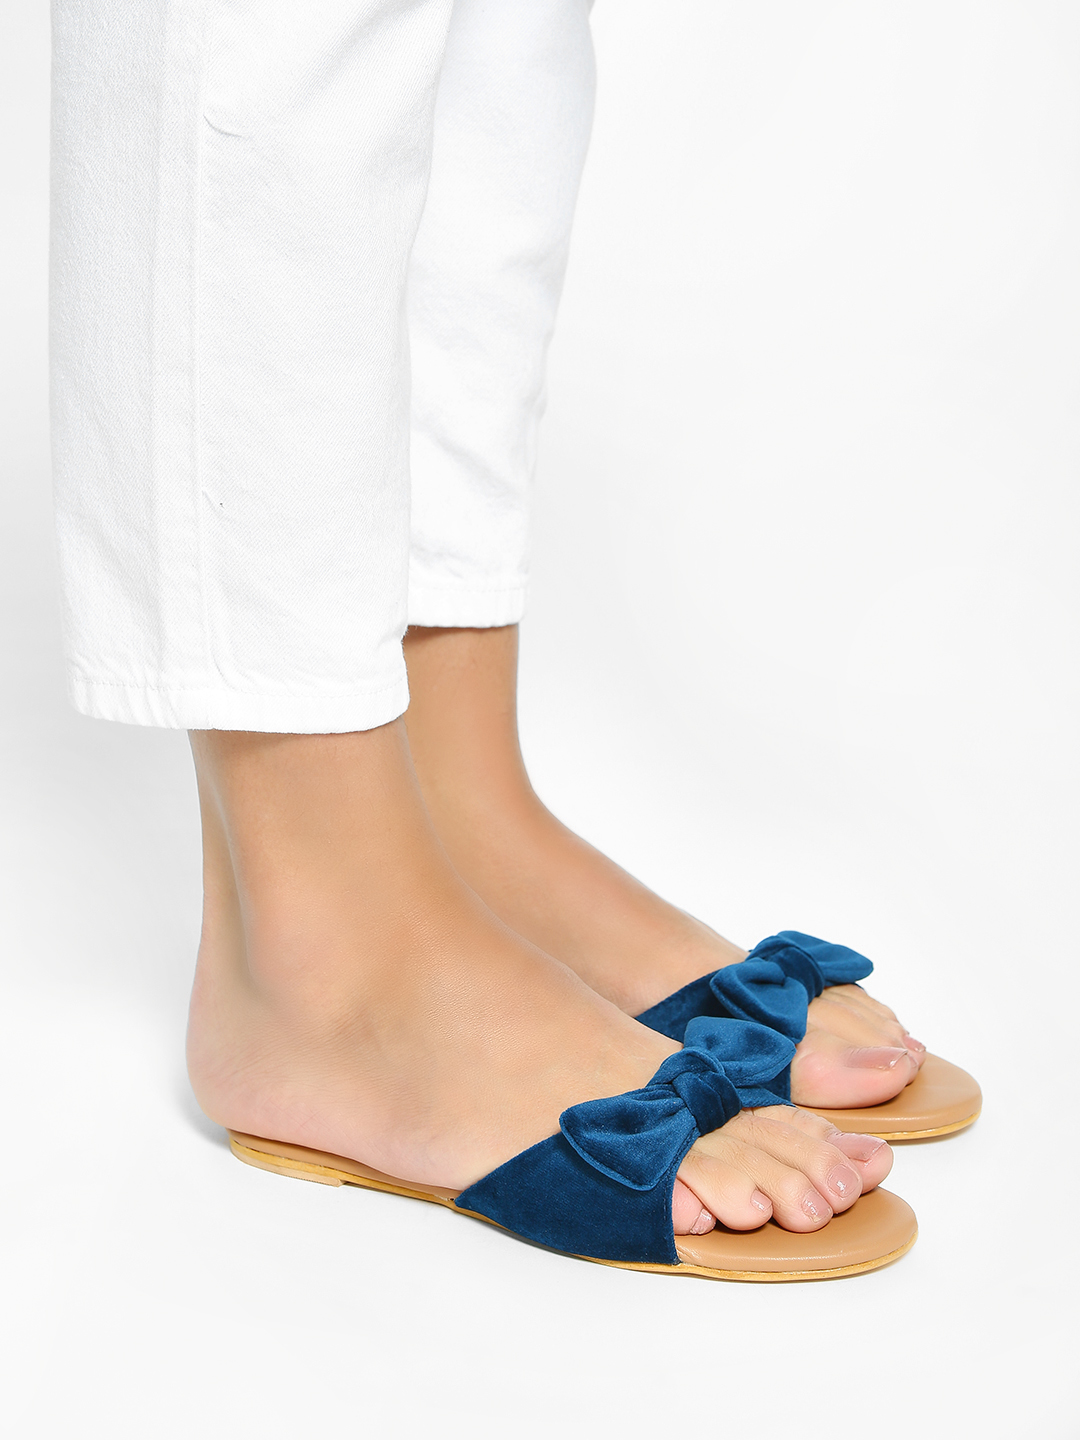 My Foot Couture Blue Velour Bow Tie Flat Sandals 1